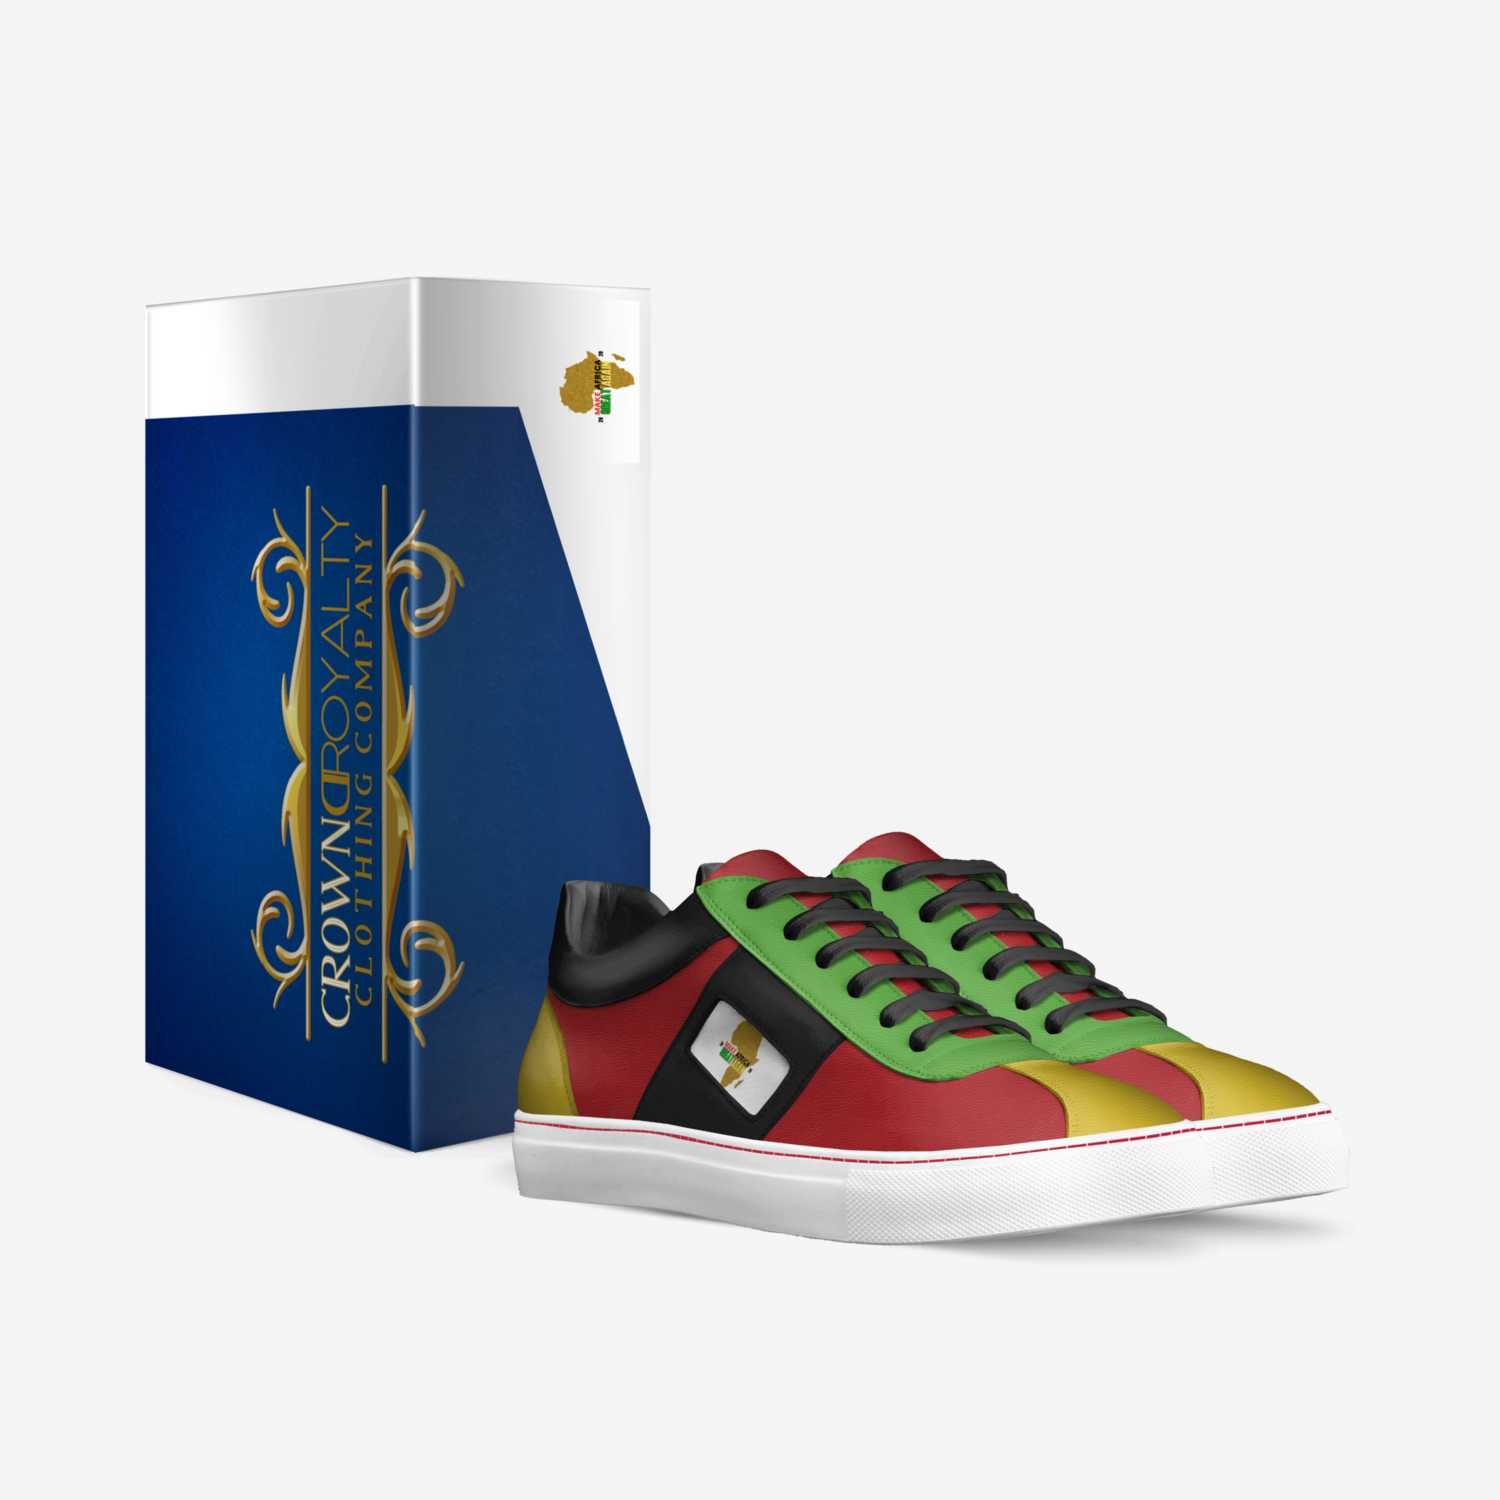 Sport AFrika custom made in Italy shoes by Jessica Lewis | Box view